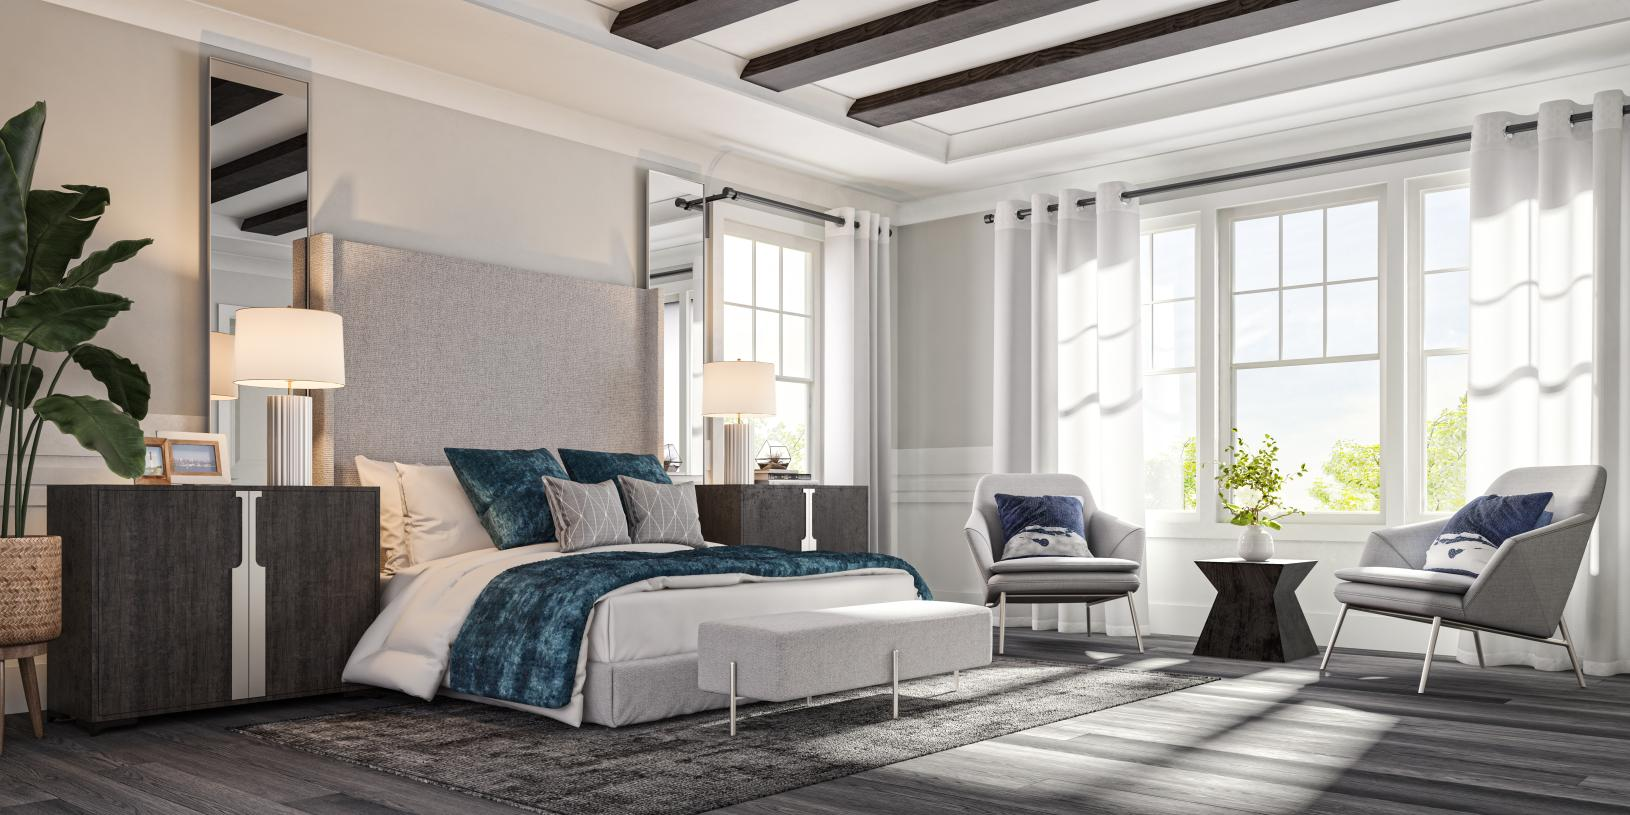 Relaxing primary bedroom suite in the Carlough